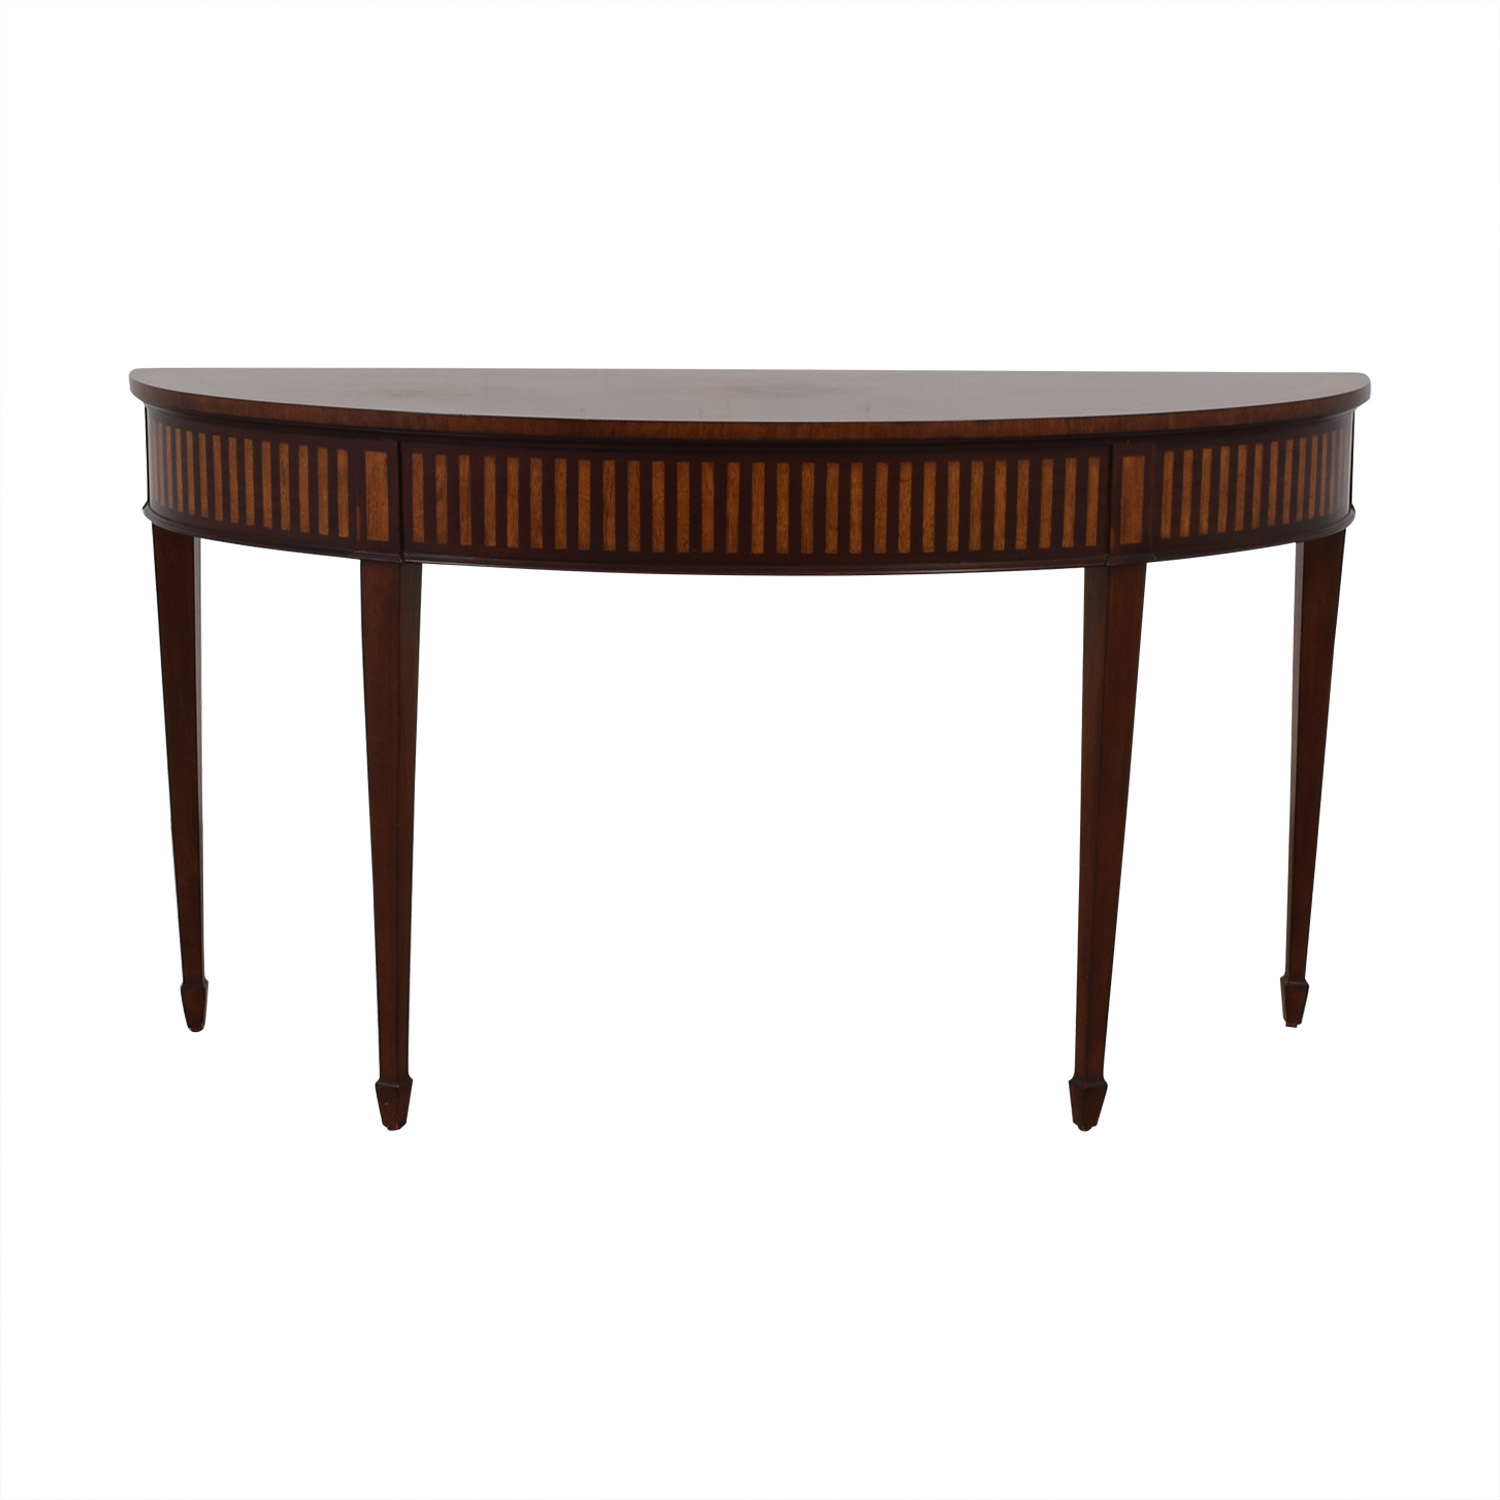 Ethan Allen Newman Demilune Sofa Table sale